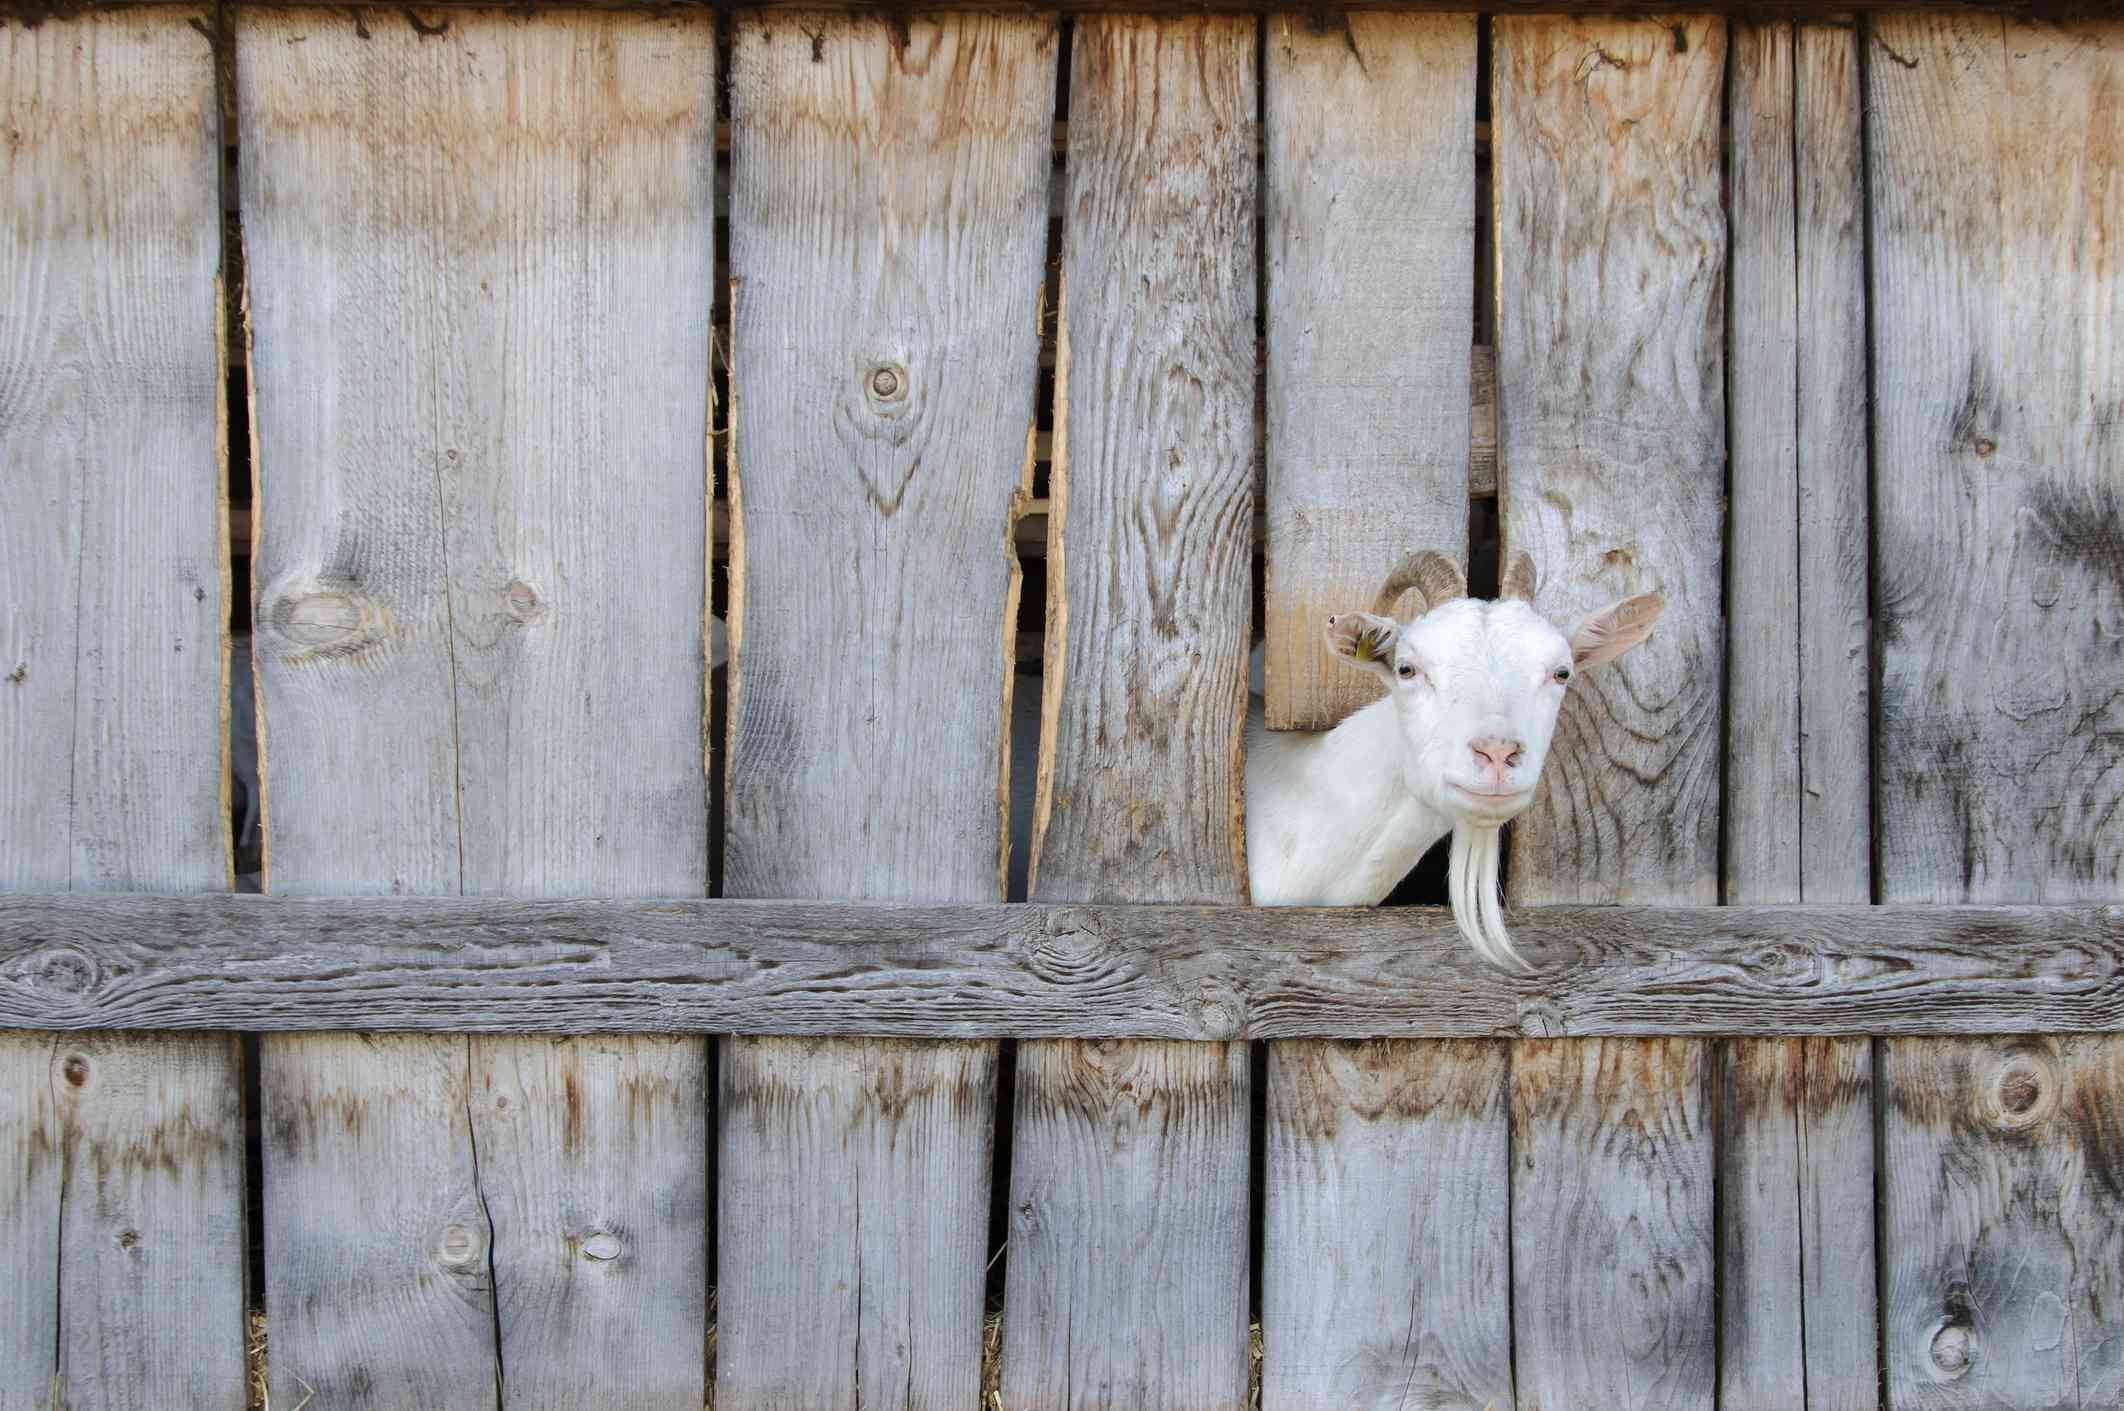 Goat poking its head through a wooden fence